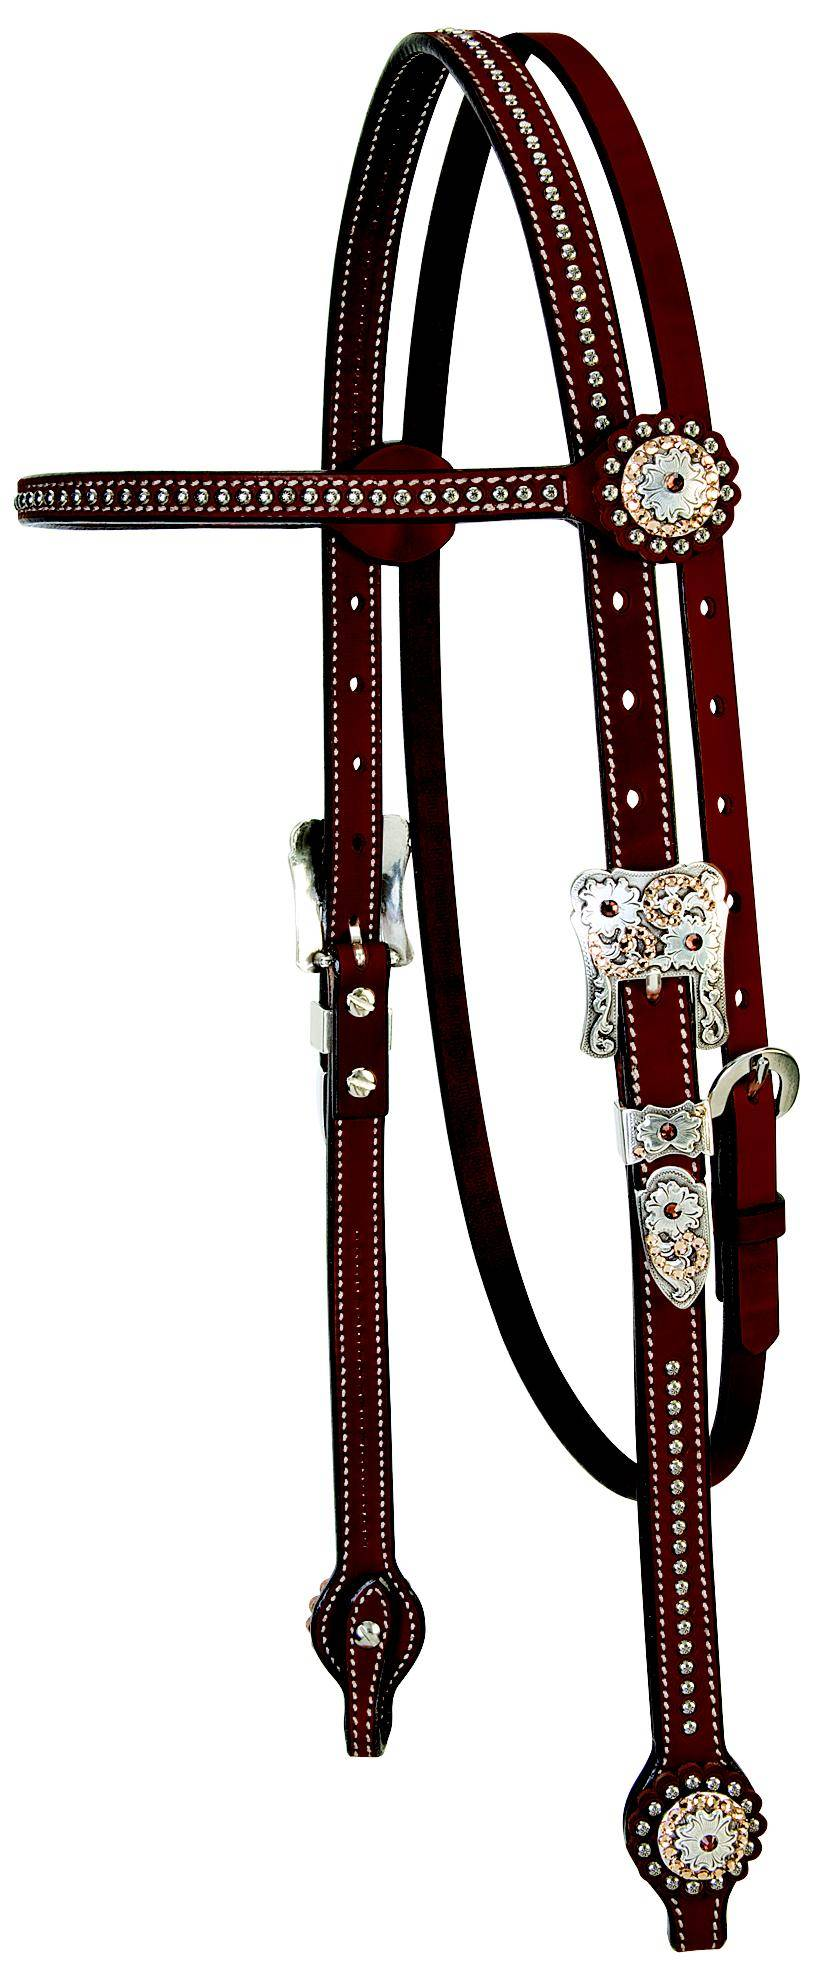 Weaver Leather Stacy Westfall Showtime Browband Headstall